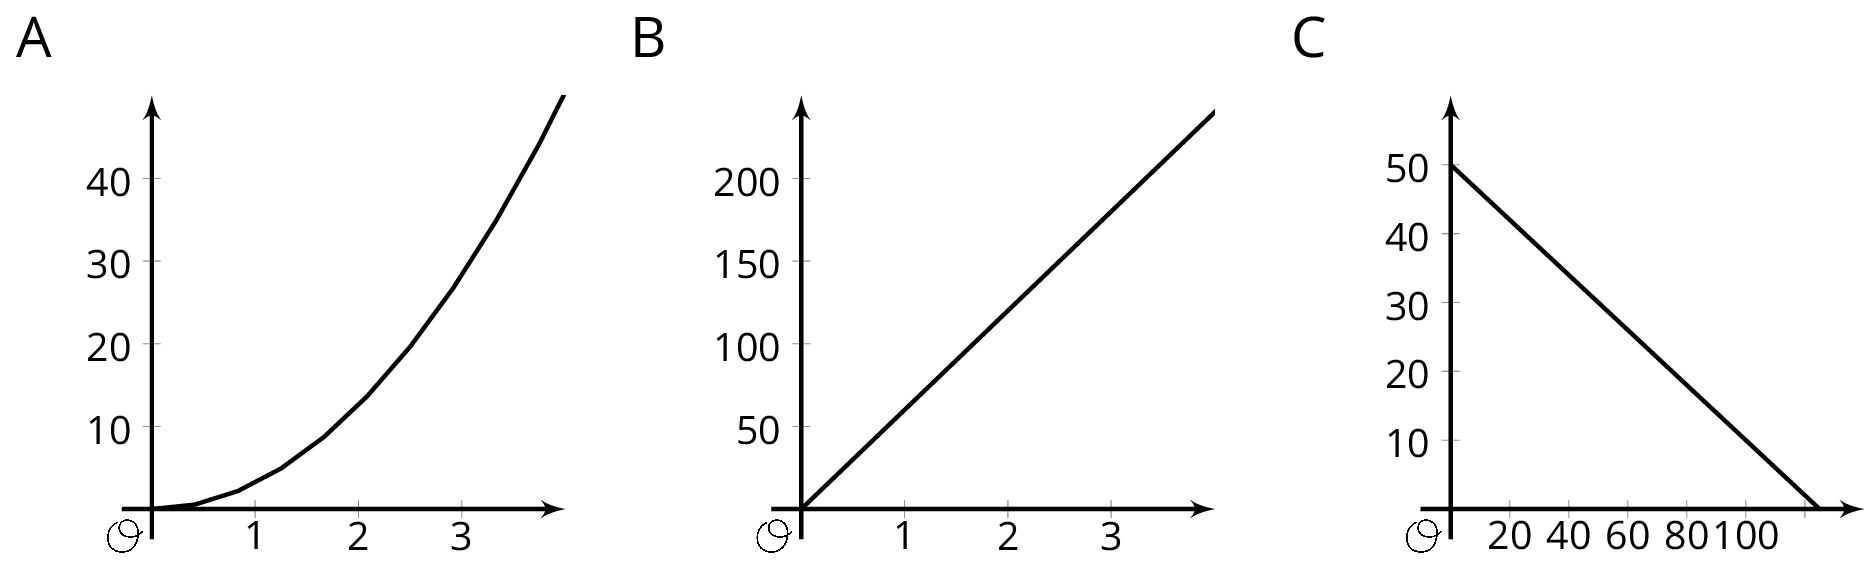 The graphs of three functions on the coordinate plane labeled A, B, and C. Graph A is the graph of a curve with the origin labeled O. The horizontal axis has the numbers 1 through 3 indicated and the vertical axis has the numbers 10 through 40, in increments of 10, indicated. The curve begins at the origin, extends to the right, and then extends upward and to the right. Graph B is the graph of a line with the origin labeled O. The horizontal axis has the numbers 1 through 3 indicated and the vertical axis has the numbers 50 through 200, in increments of 50, indicated. The line begins at the origin and slants upward and to the right. Graph C is the graph of a line with the origin labeled O. The horizontal axis has the nubers 20 through 100, in increments of 20, indicated and the vertical axis has the numbers 10 through 50, in increments 10, indicated. The line begins on the vertical axis at 50 and slants downward and to the right.